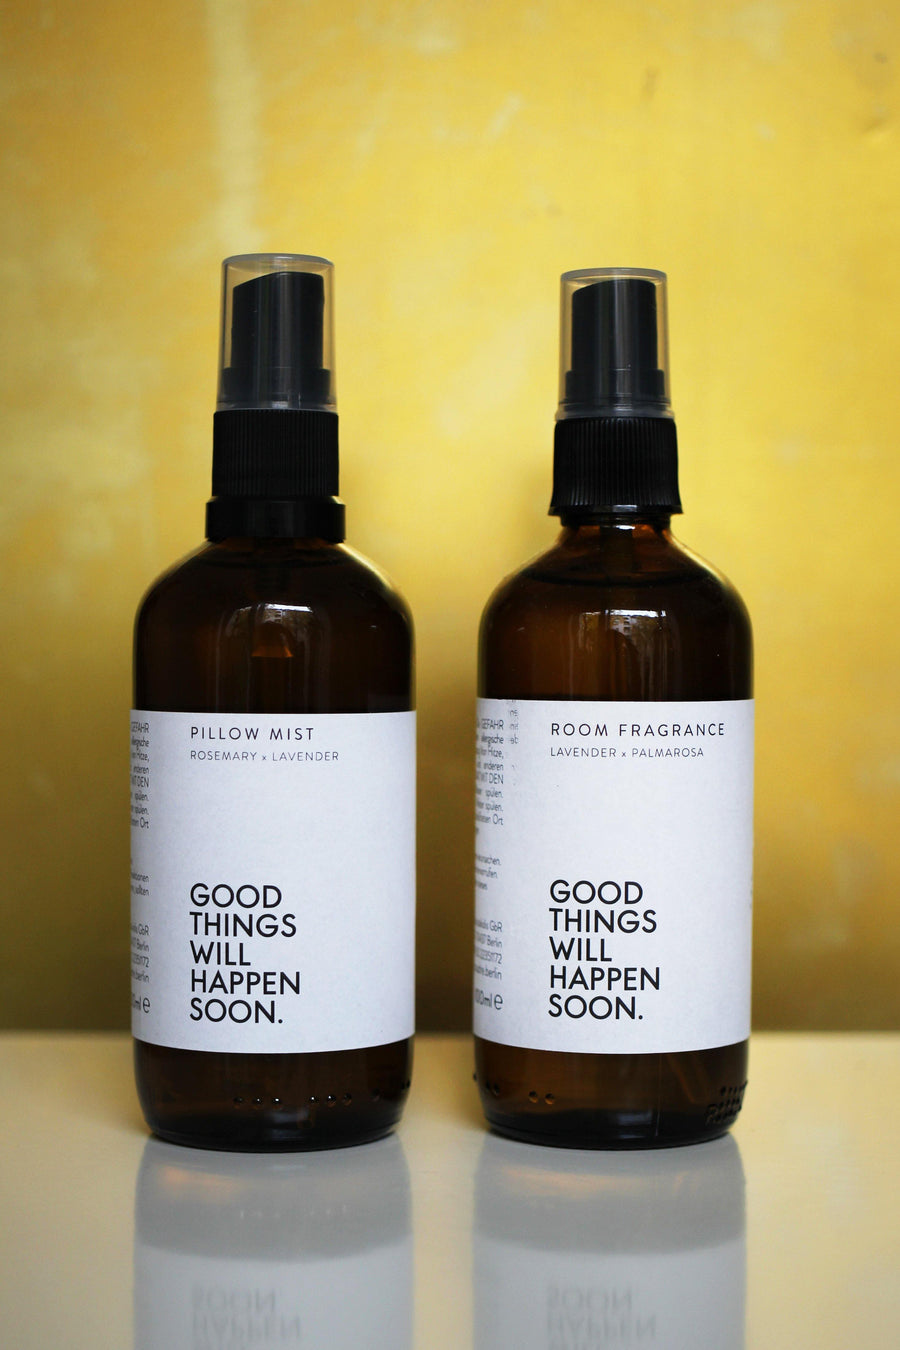 Good Things Will Happen Soon x Coudre Berlin Pillow Mist